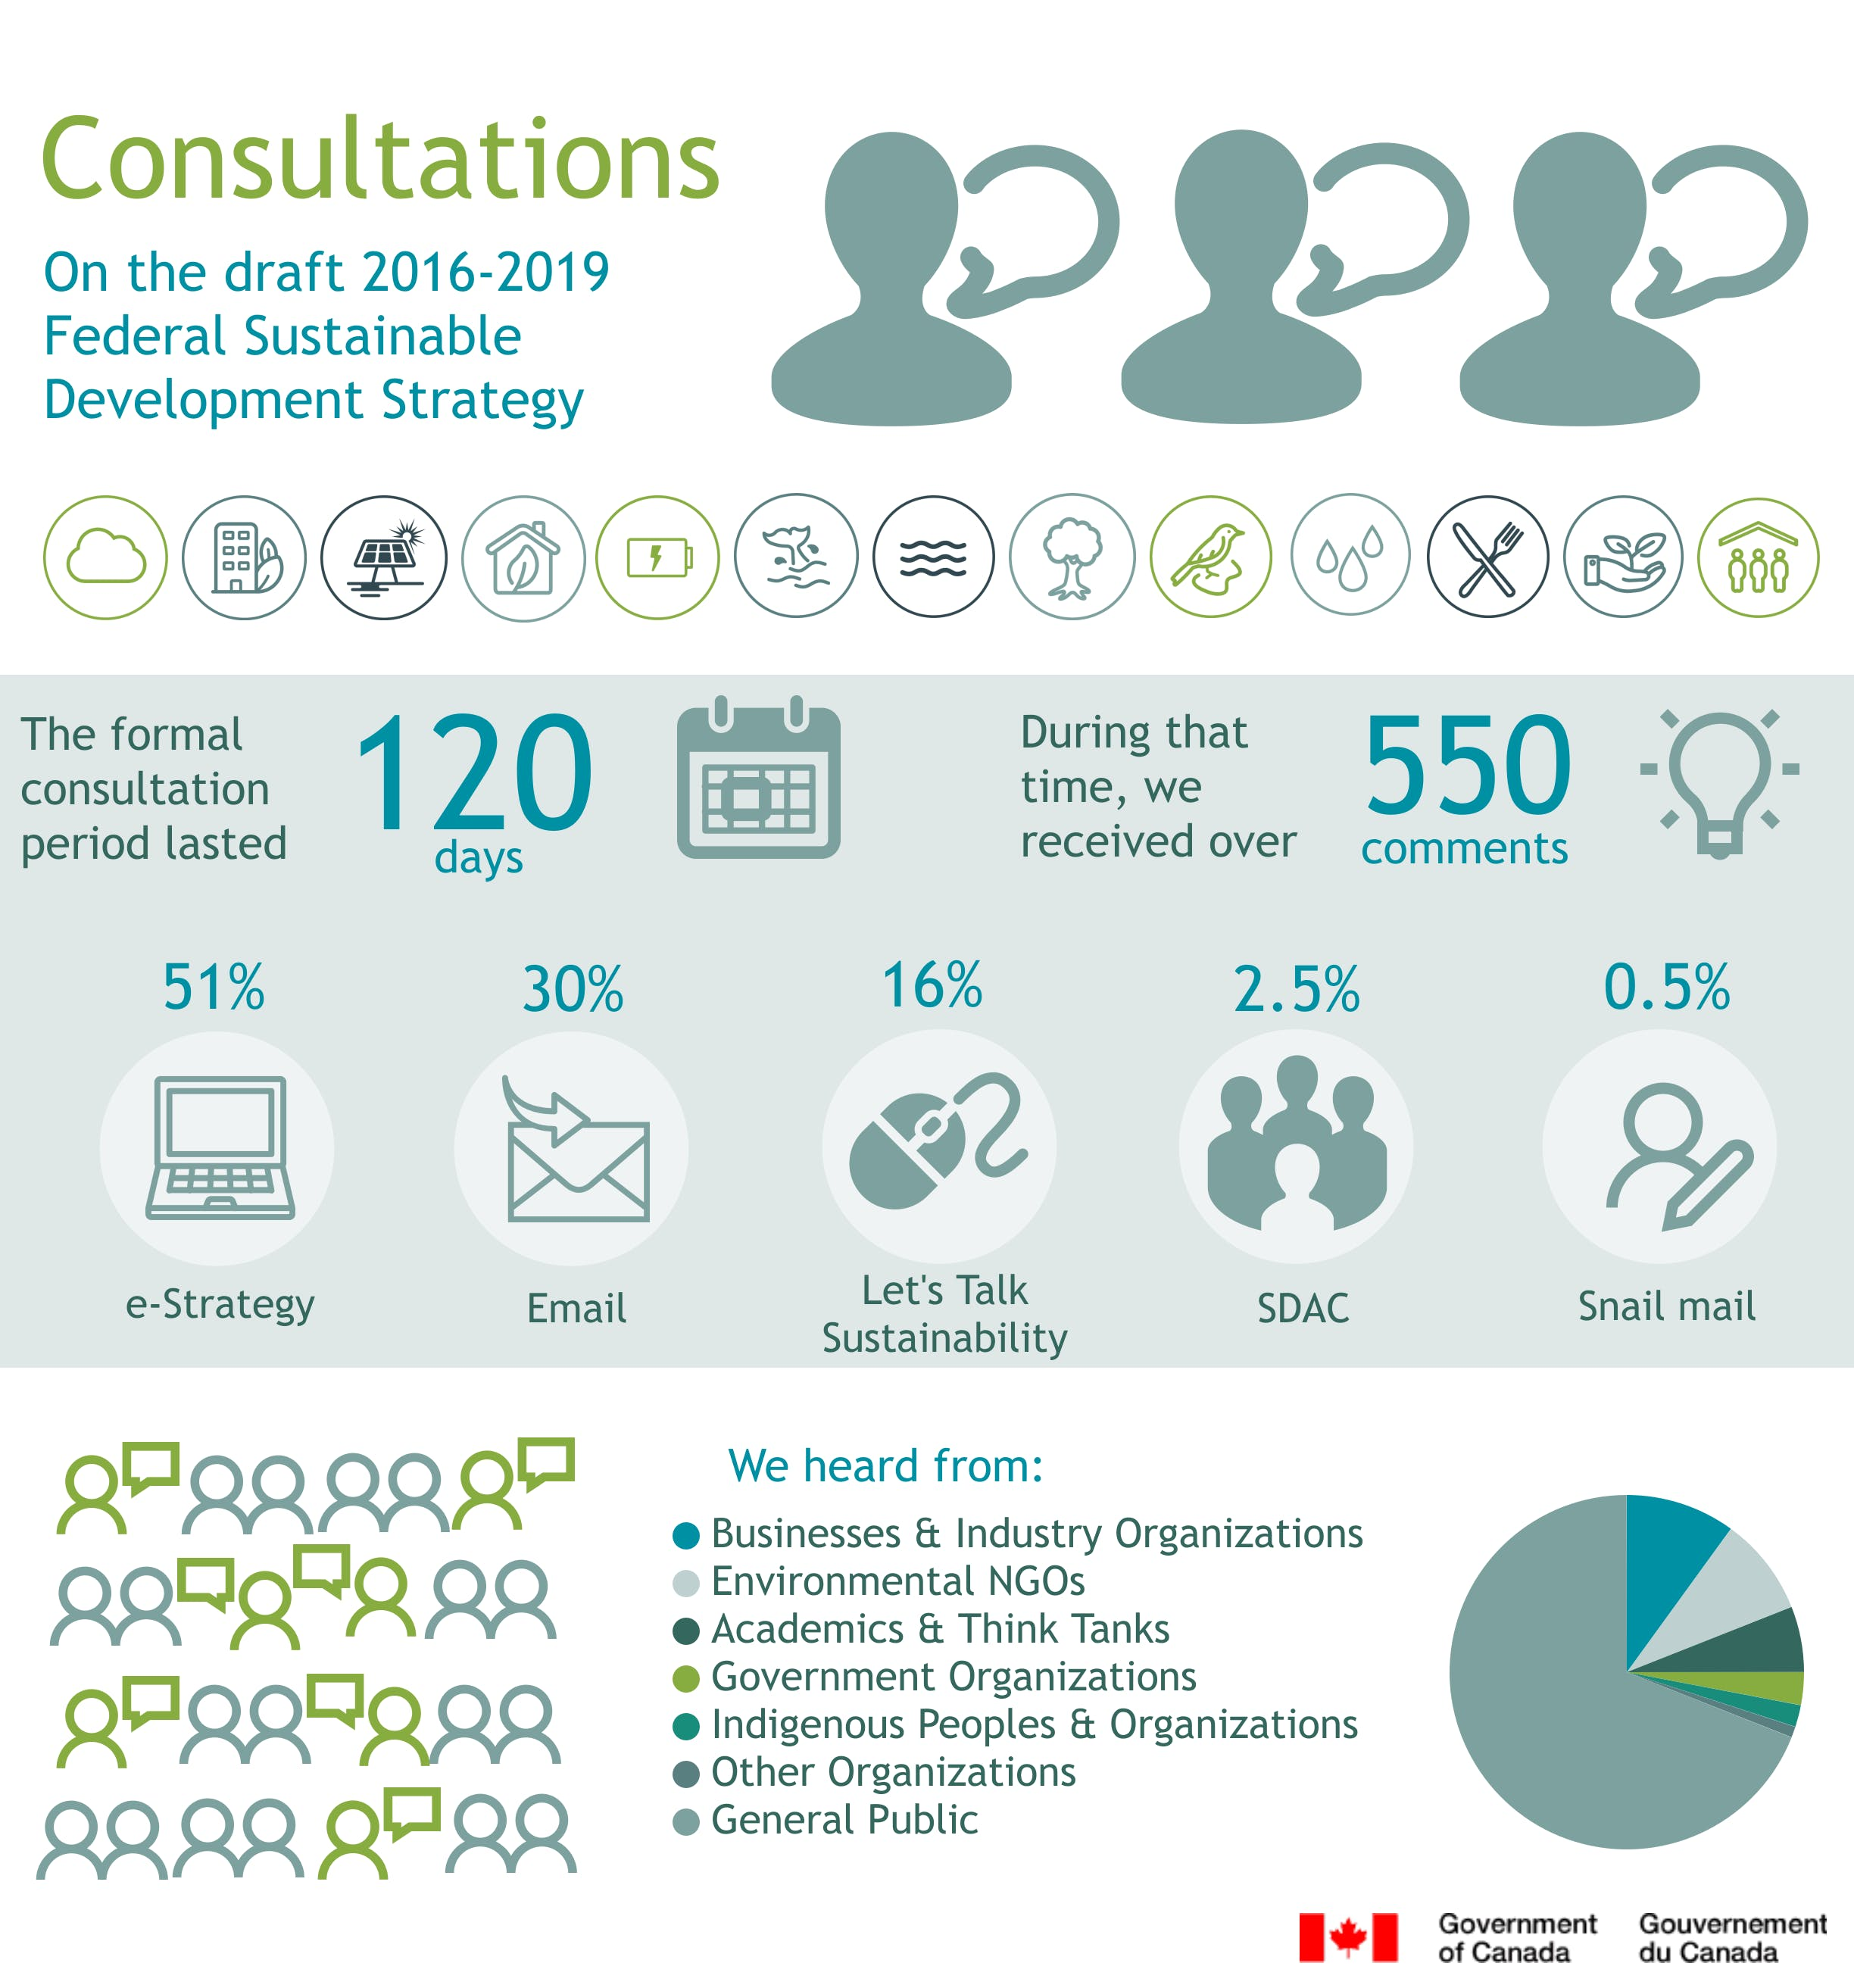 Infographic: Consultation on the 2016–2019 FSDS